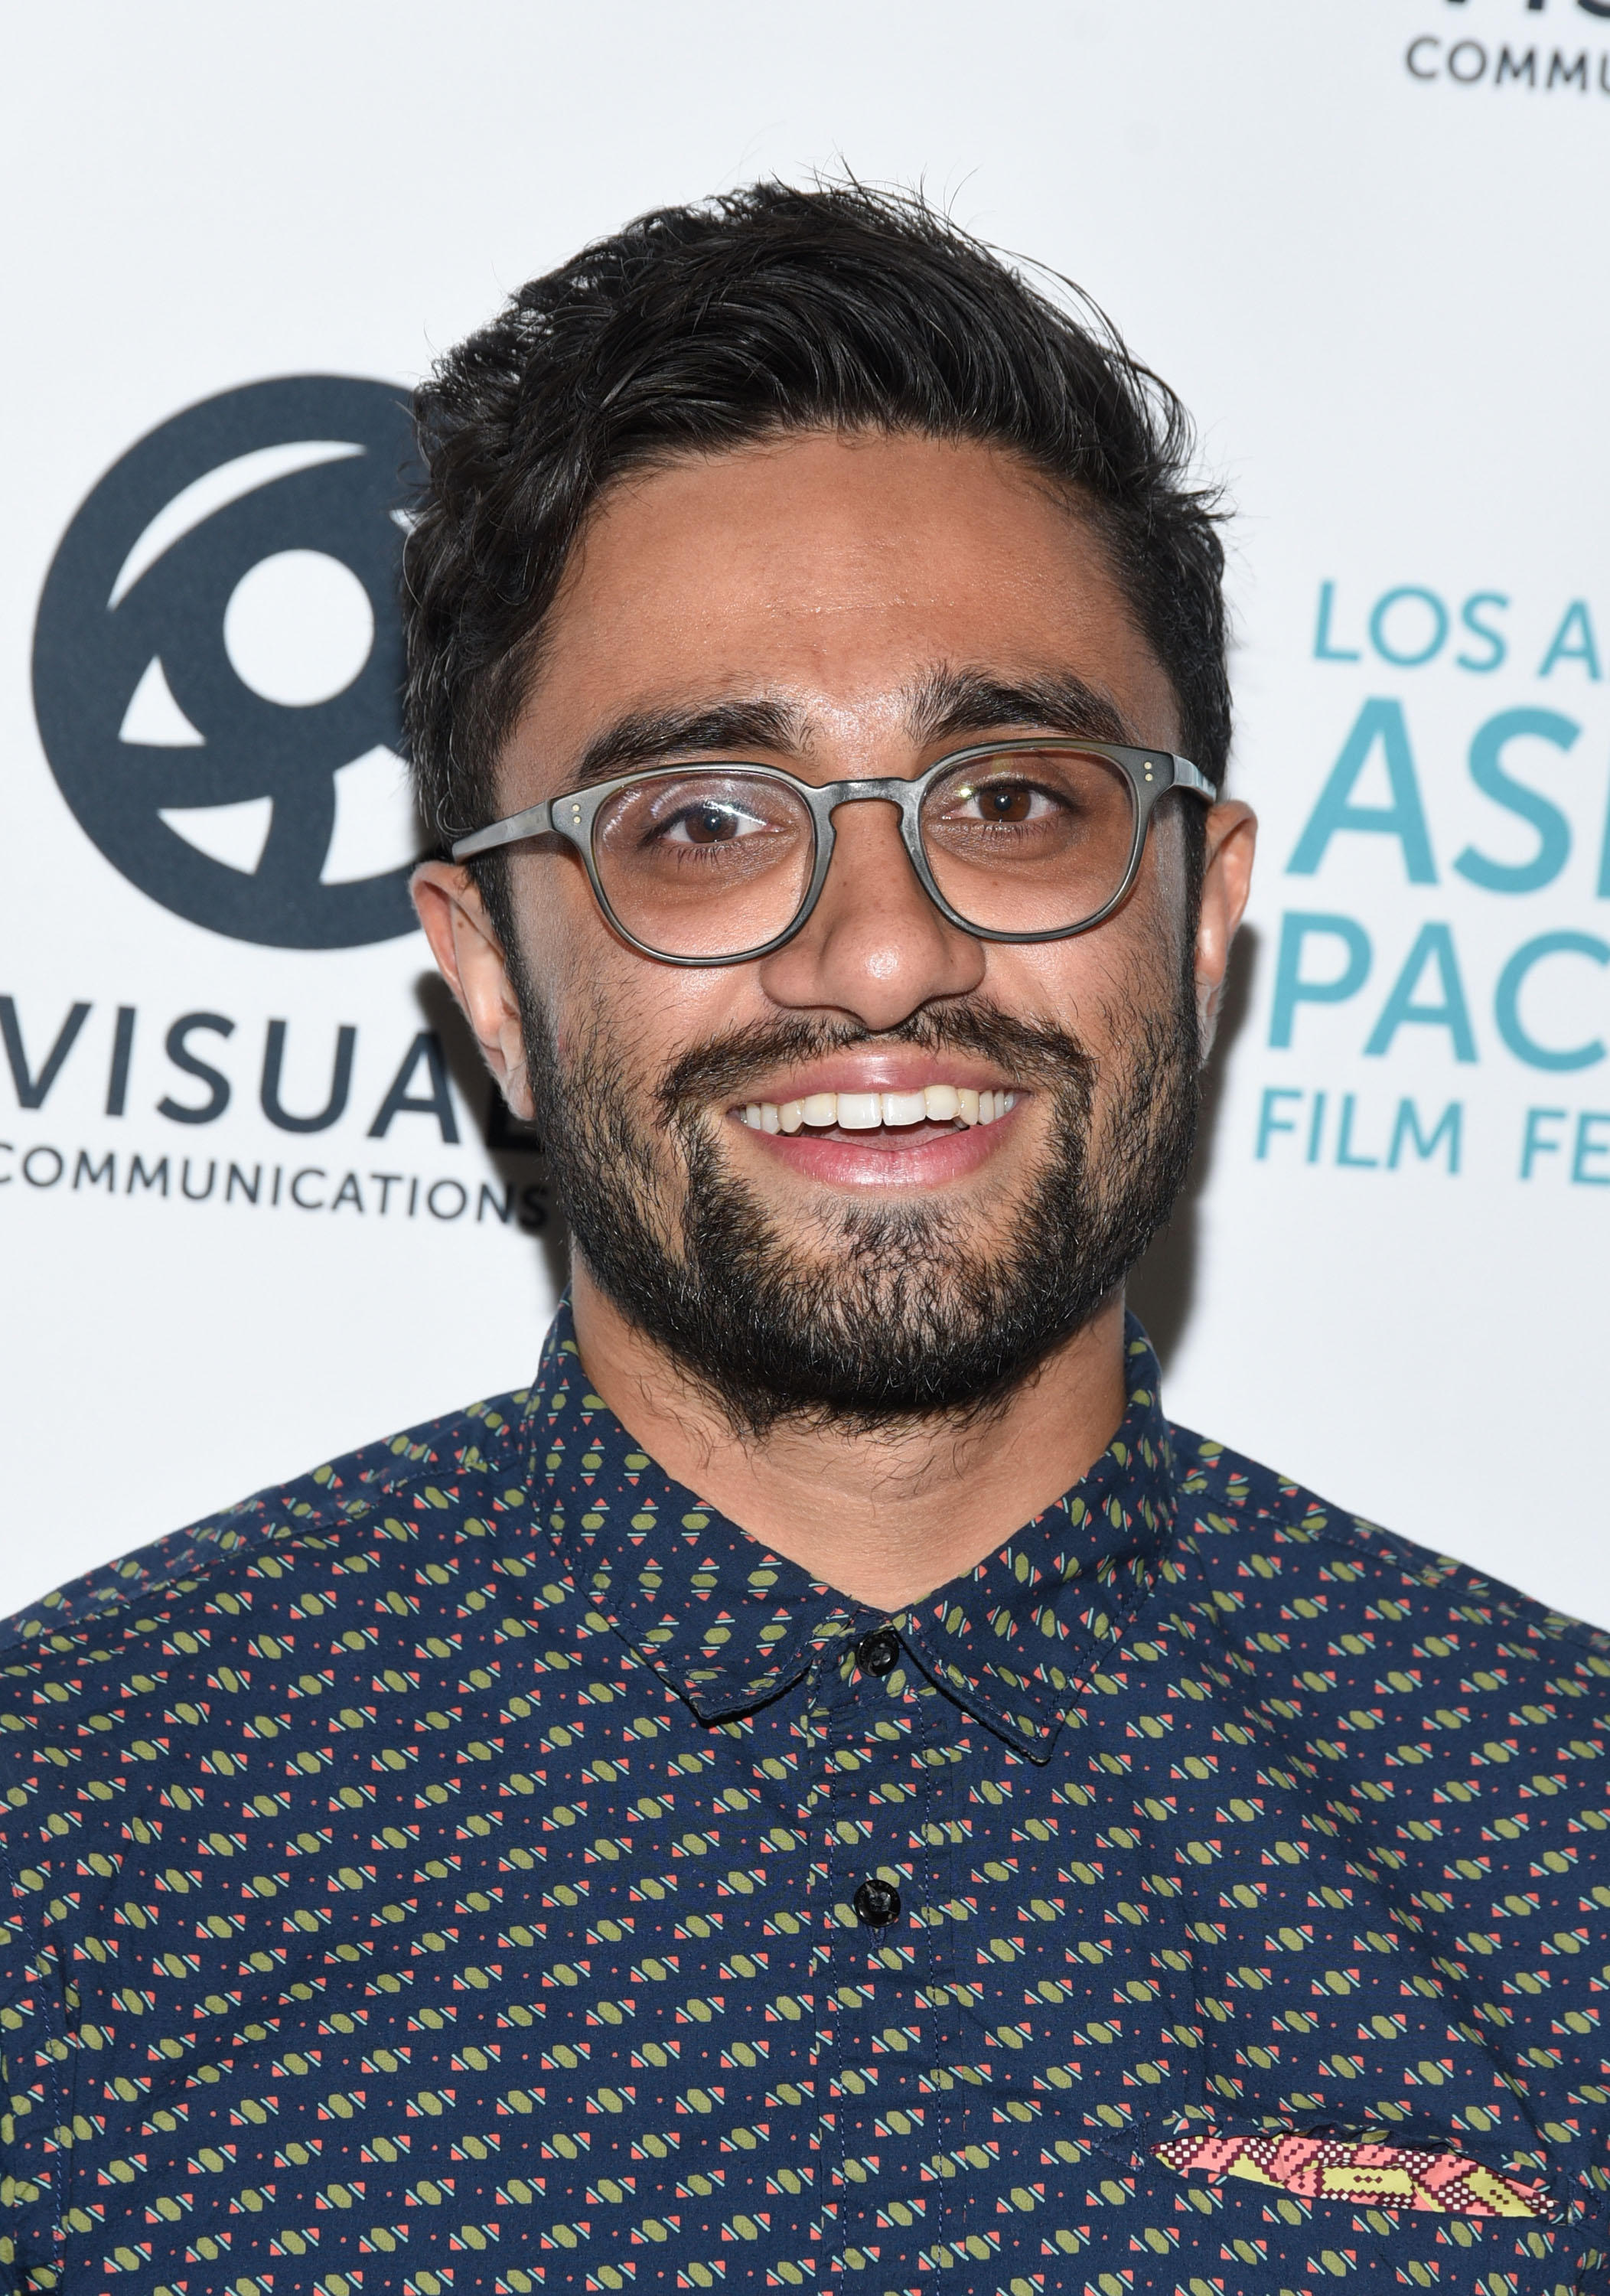 """Los Angeles Asian Pacific Film Festival - Opening Night Premiere Of """"Searching"""" - Arrivals"""